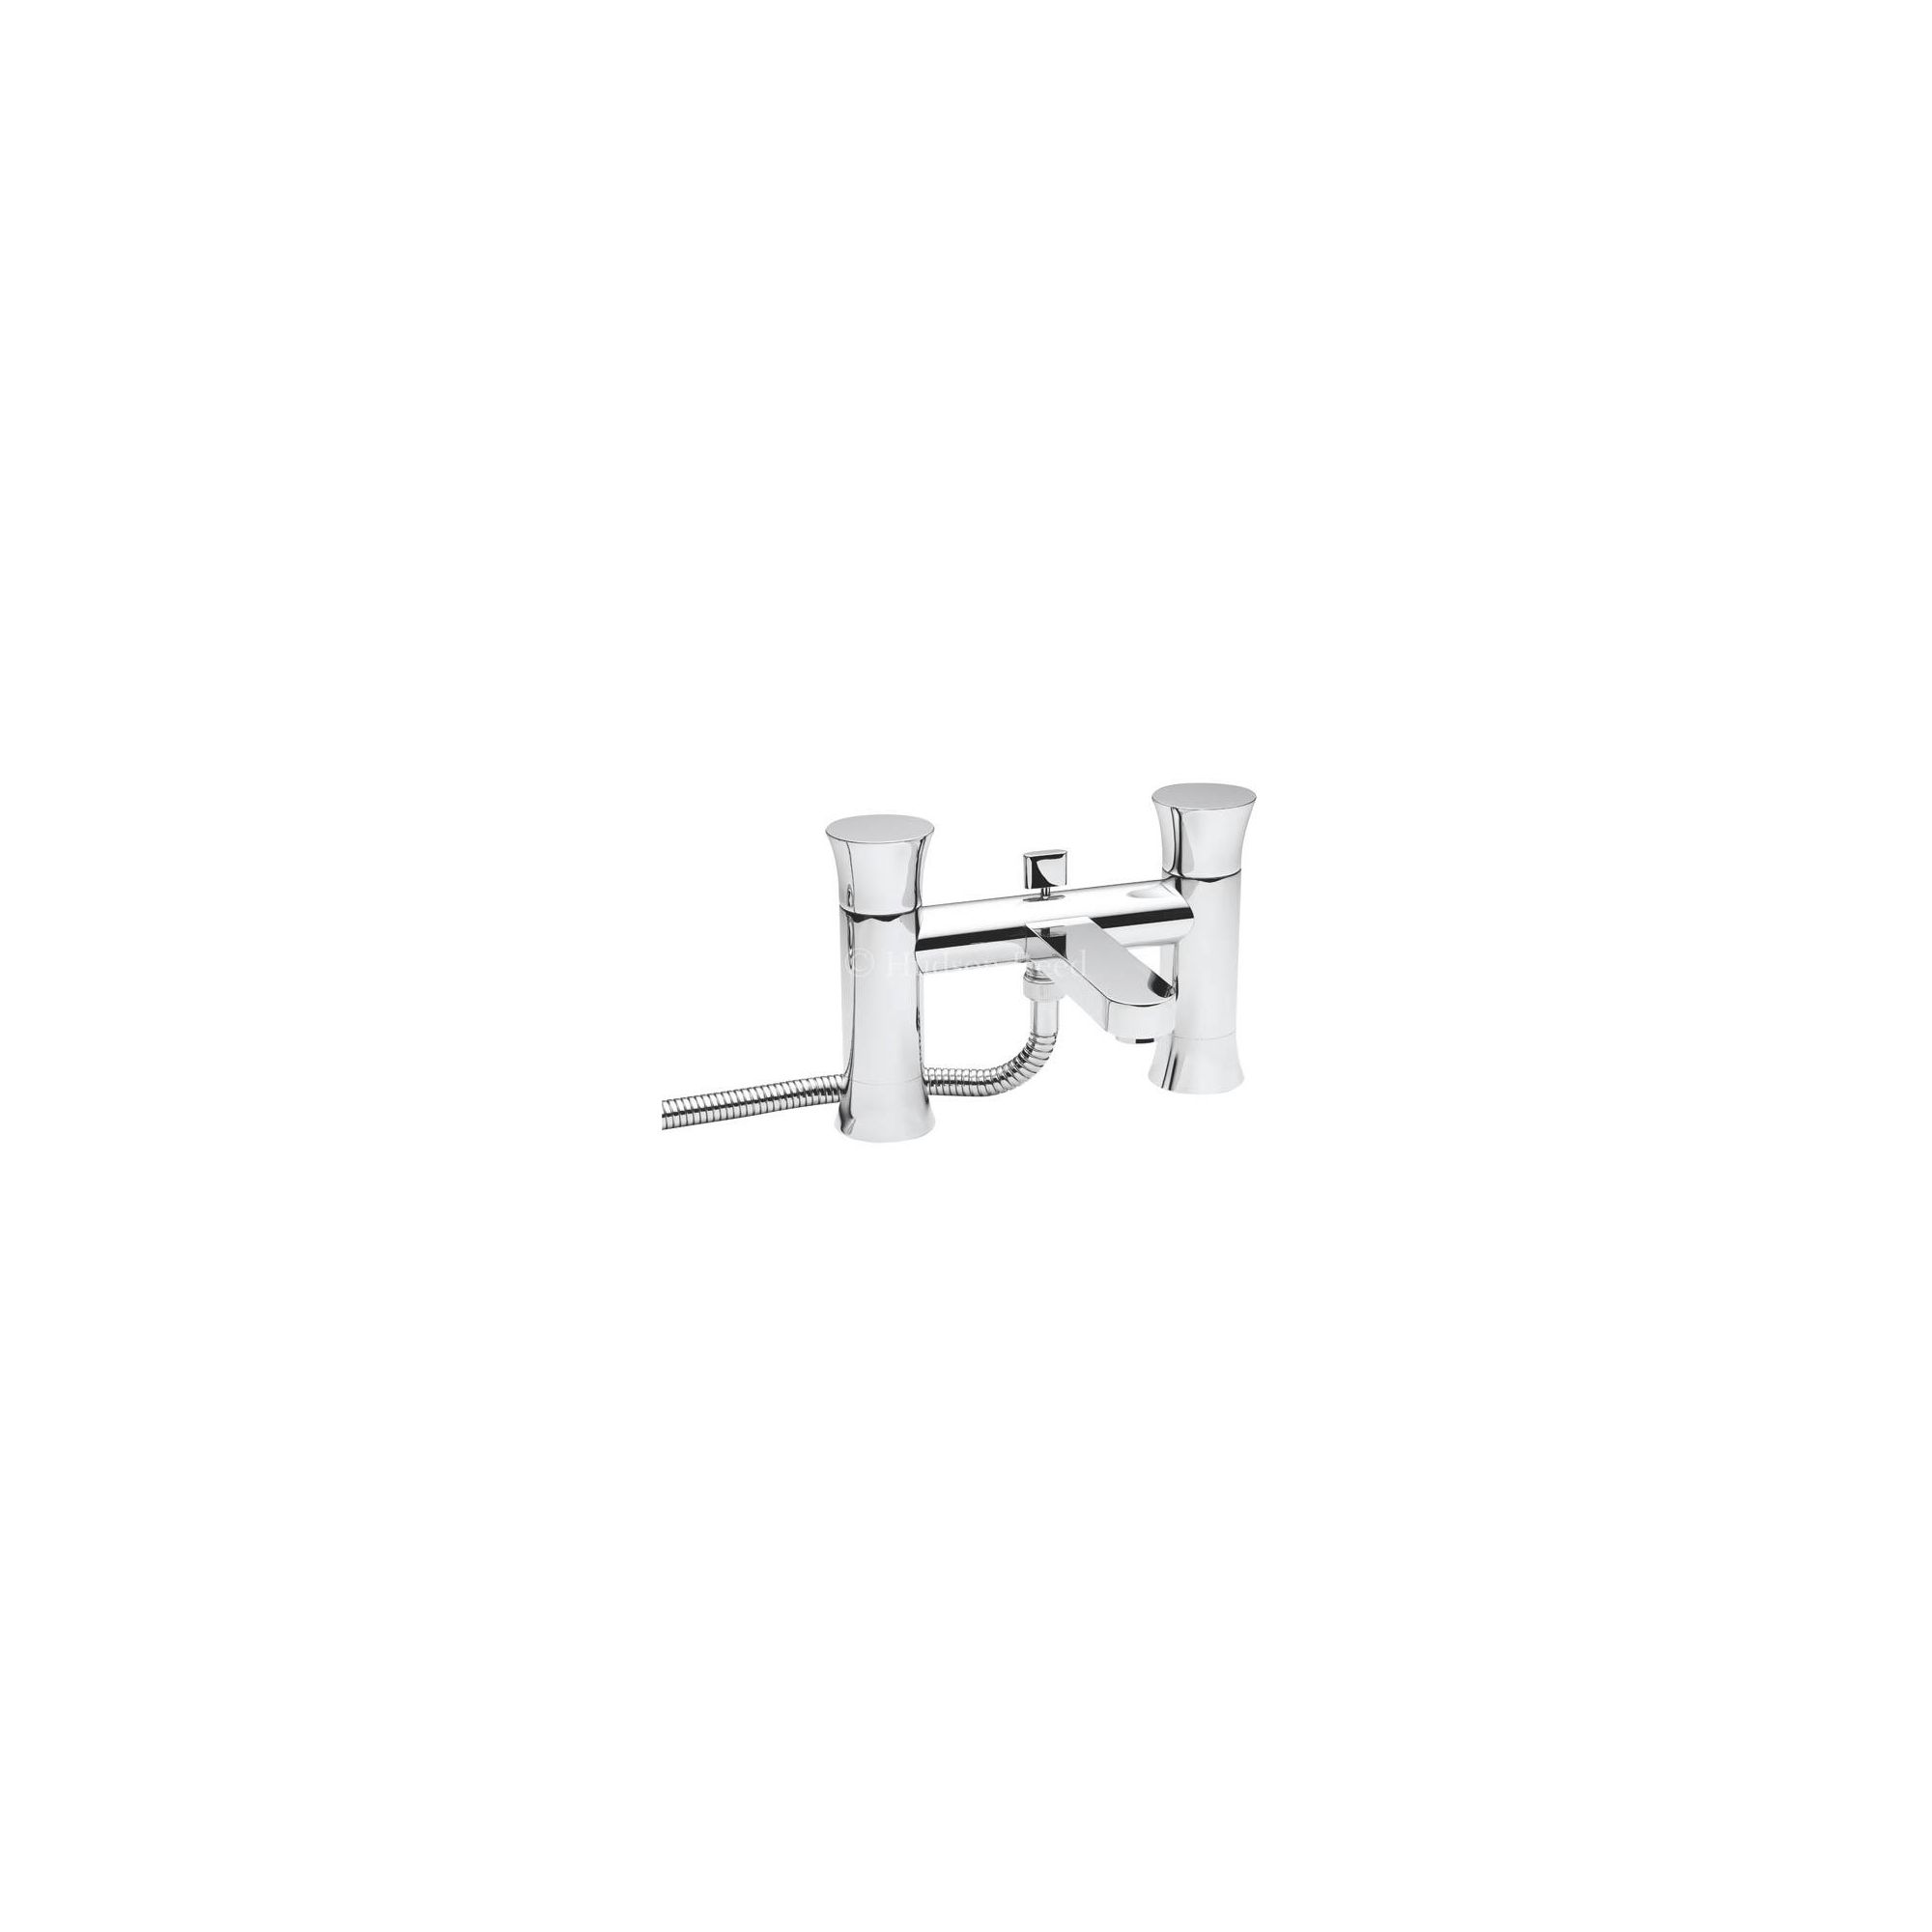 Hudson Reed Quill Pillar Mounted Bath Shower Mixer Tap with Shower Kit and Wall Bracket at Tesco Direct